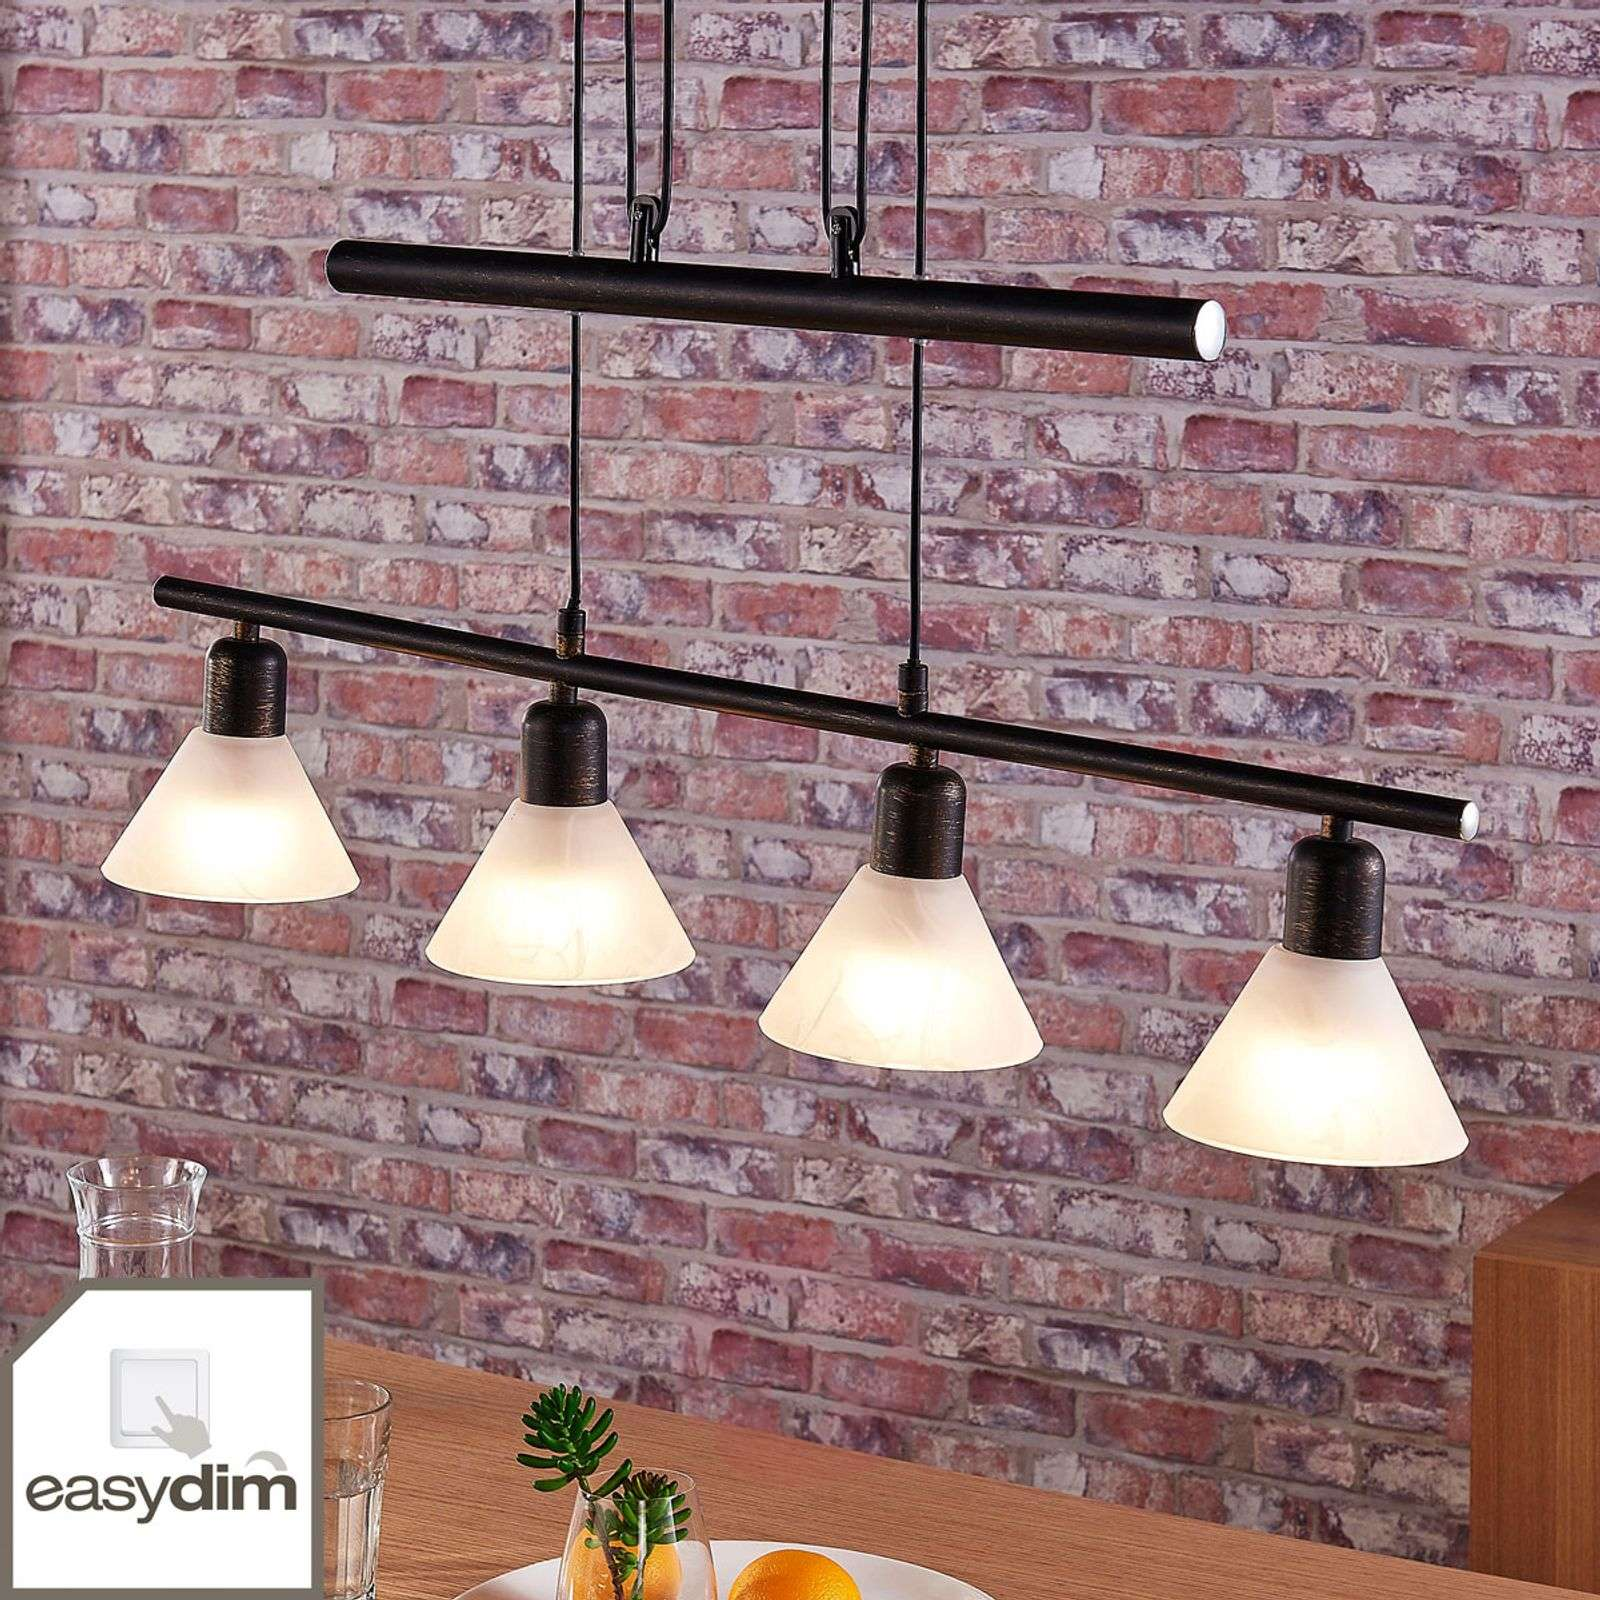 4-bulb LED hanging lamp Eleasa, Easydim-9621385-02